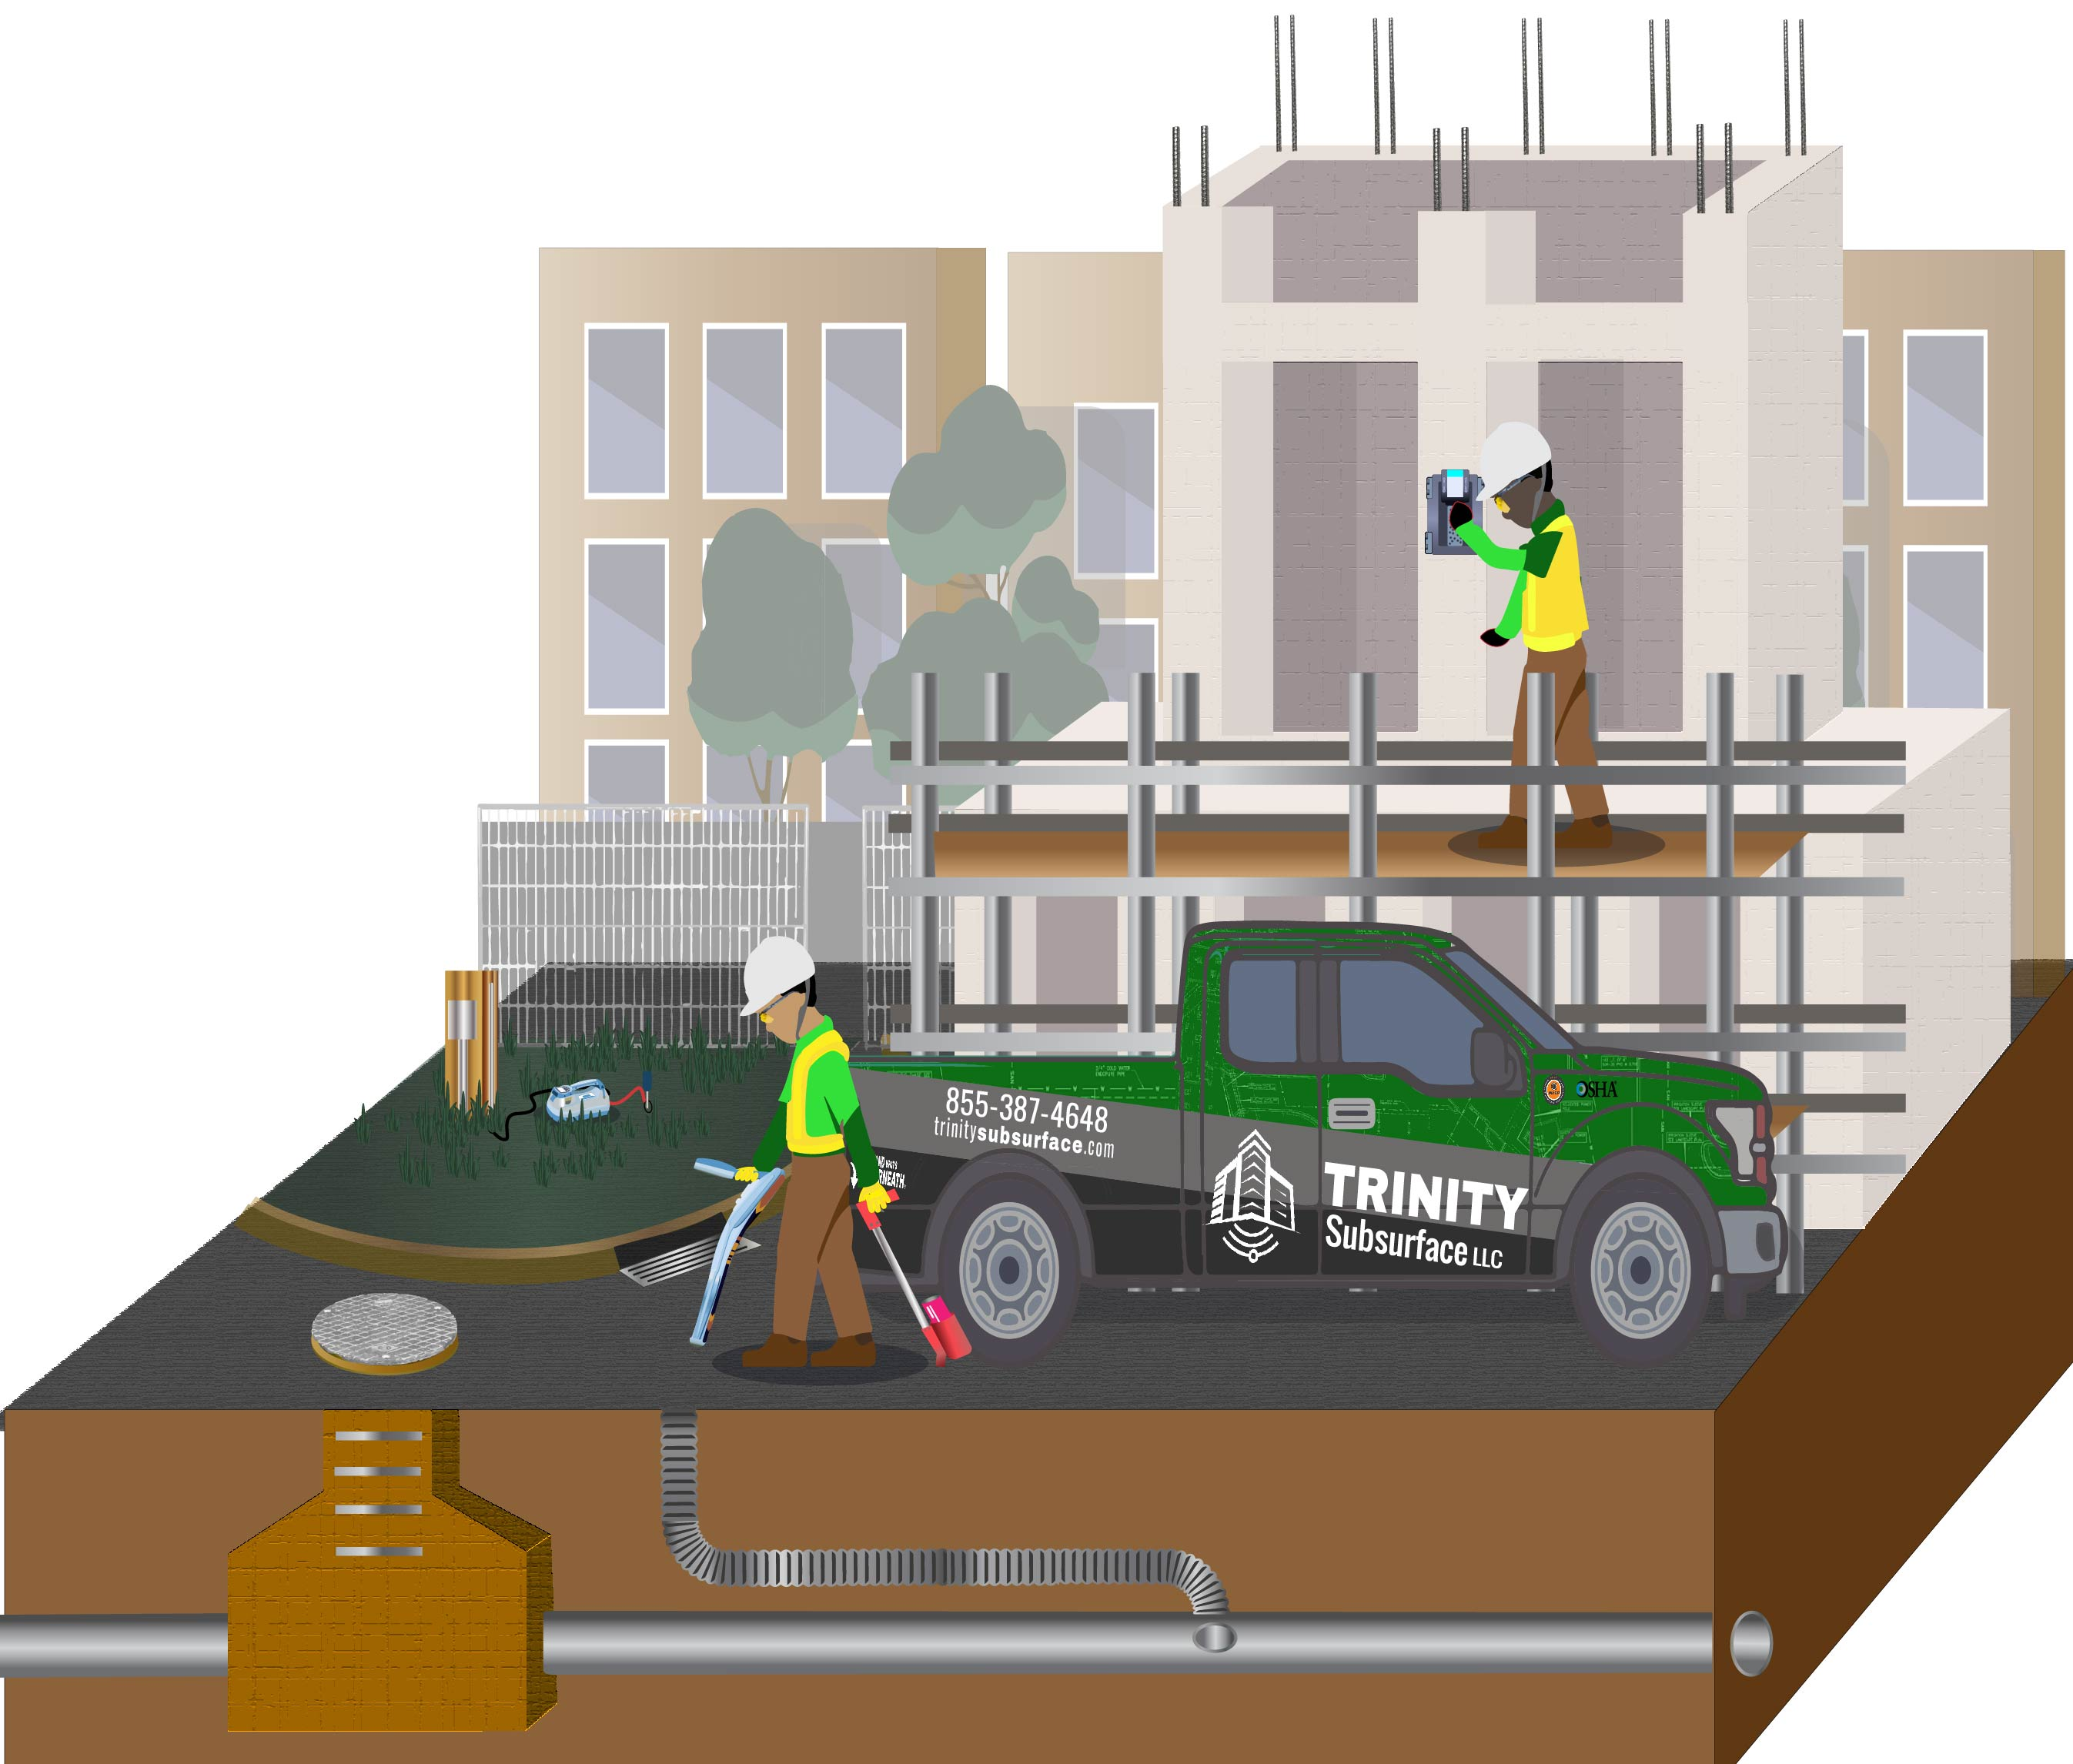 trinity subsurface schedules work in utility locating and concrete scanning for project managers in diagram